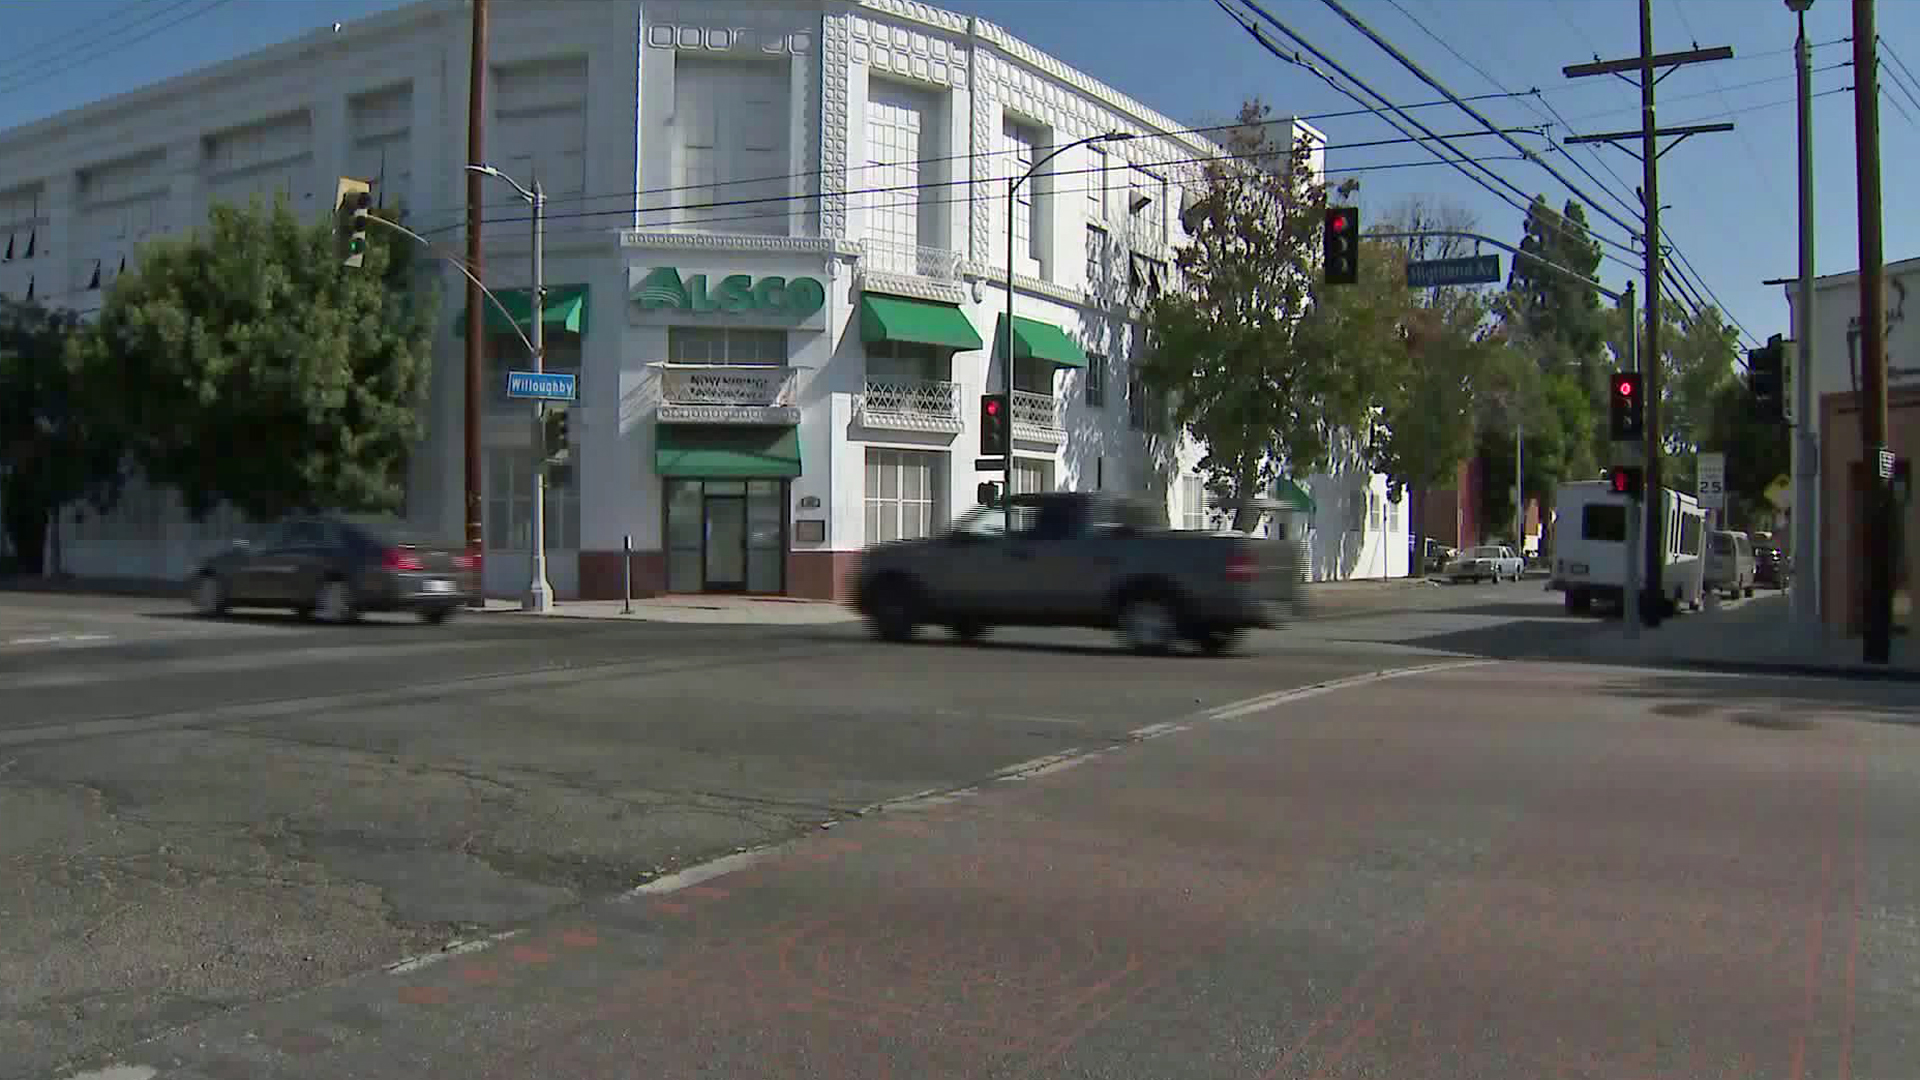 The intersection of Highland and Willoughby avenues is shown hours after a fatal hit-and-run crash occurred there on Oct. 18, 2019. (Credit: KTLA)